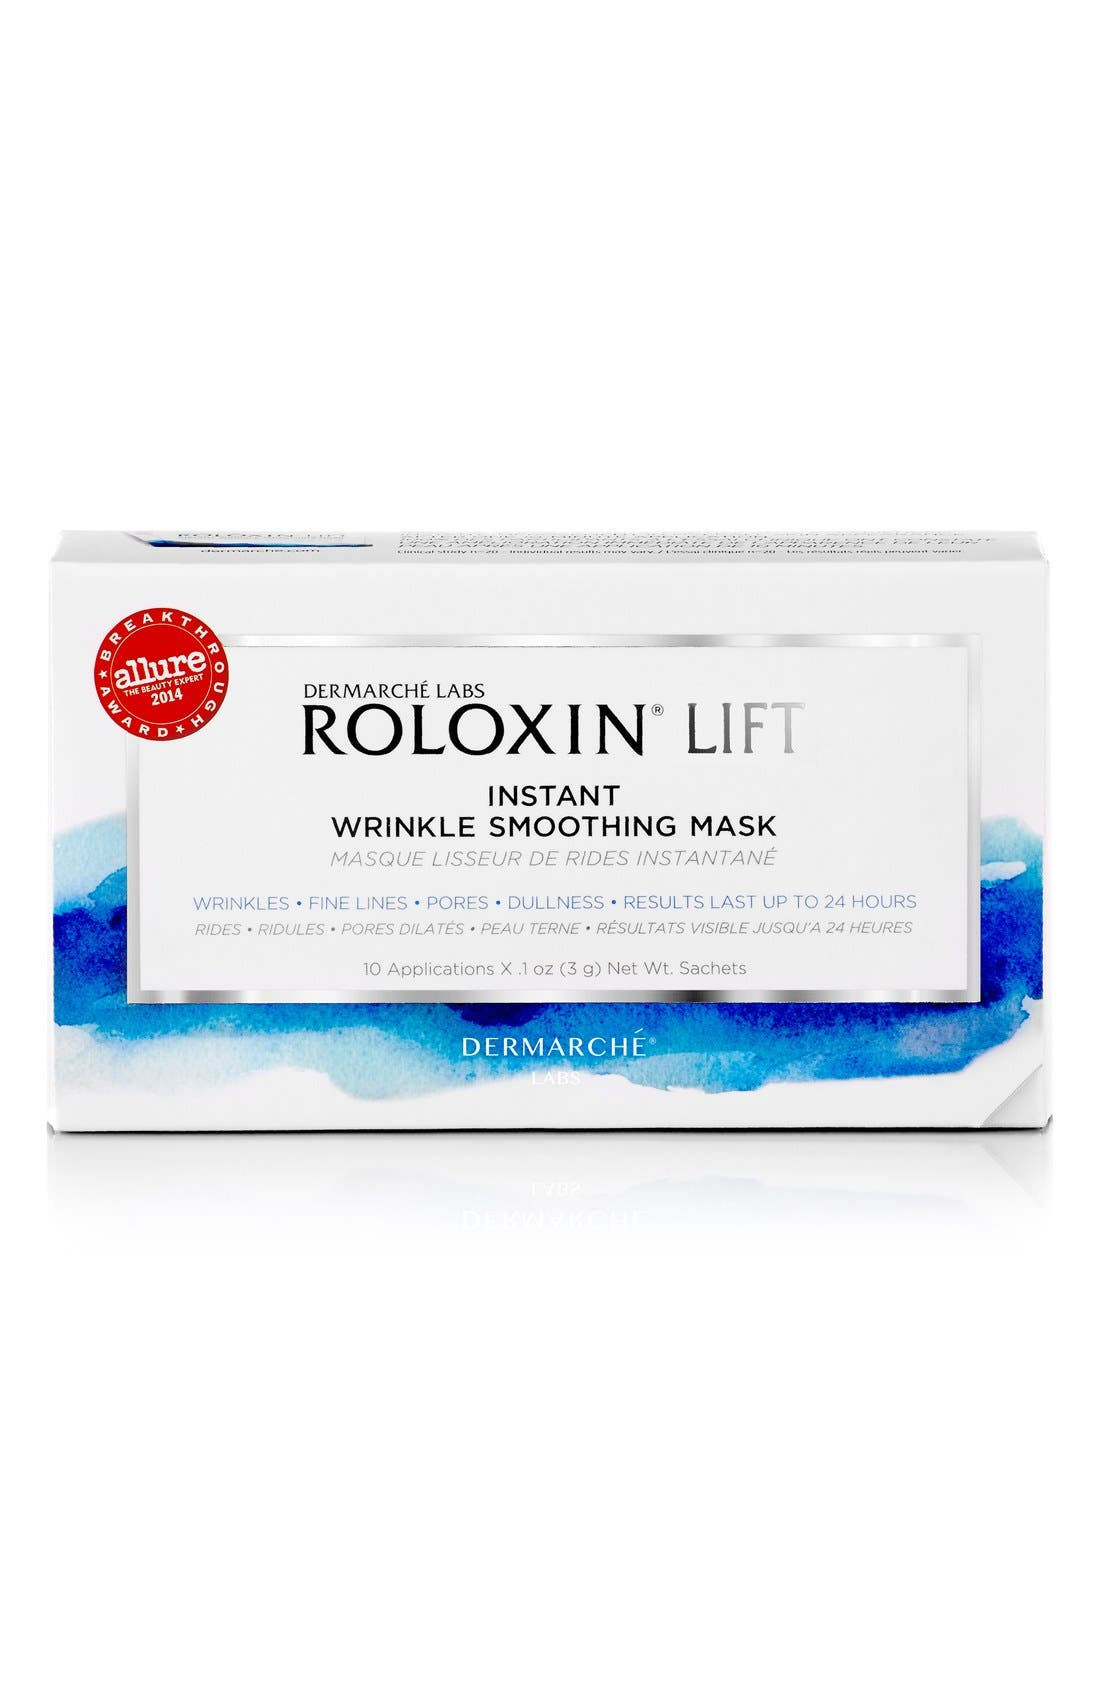 Dermarché Labs 'Roloxin® Lift' Instant Wrinkle Smoothing Mask